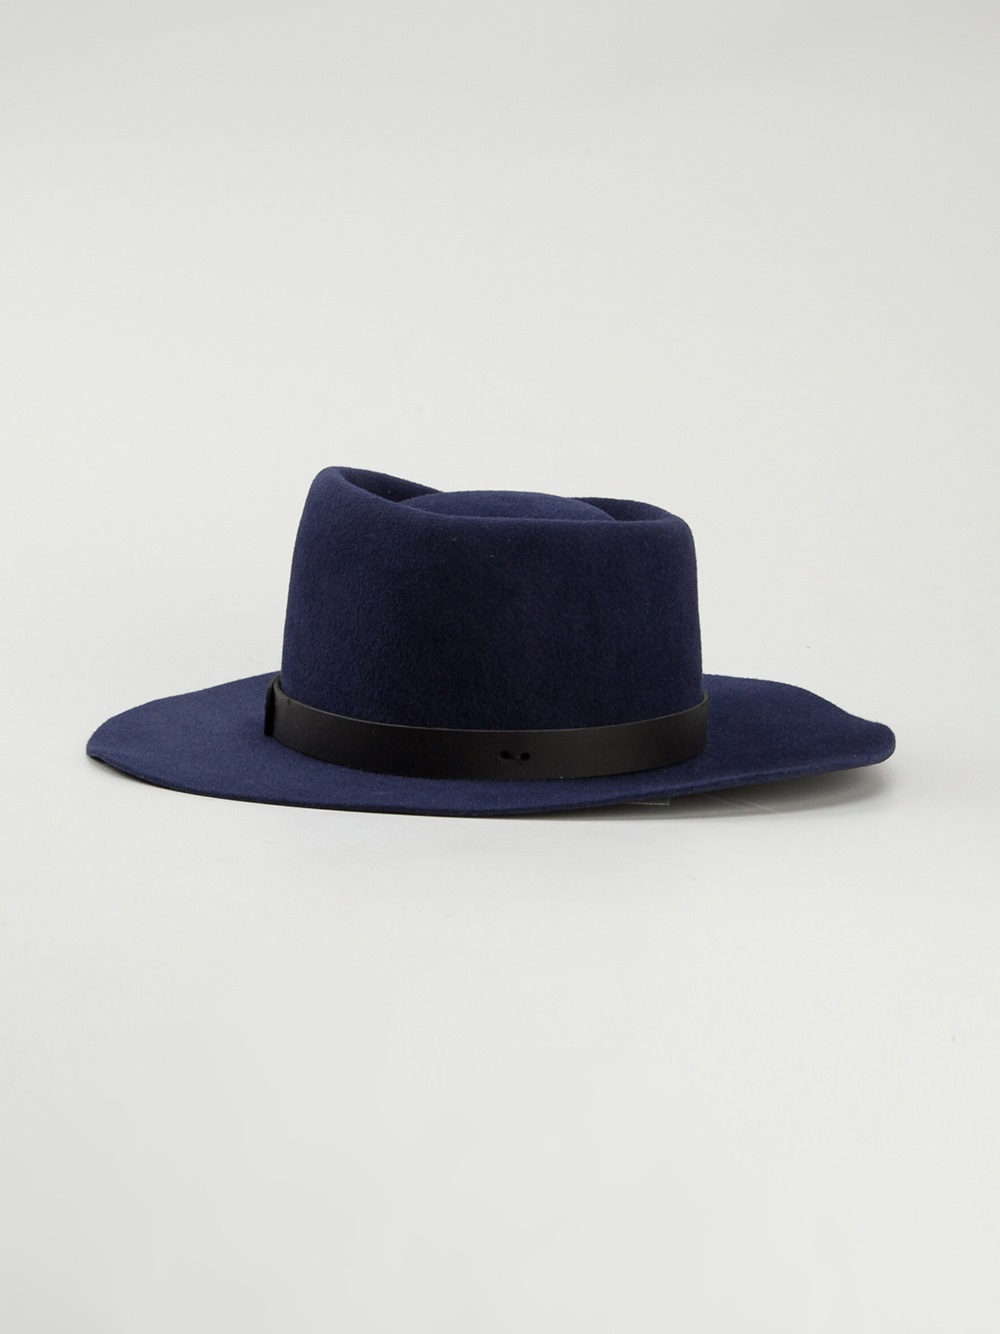 d3f8f6cb624 Lyst - Gladys Tamez Millinery The Zodiac Hat in Blue